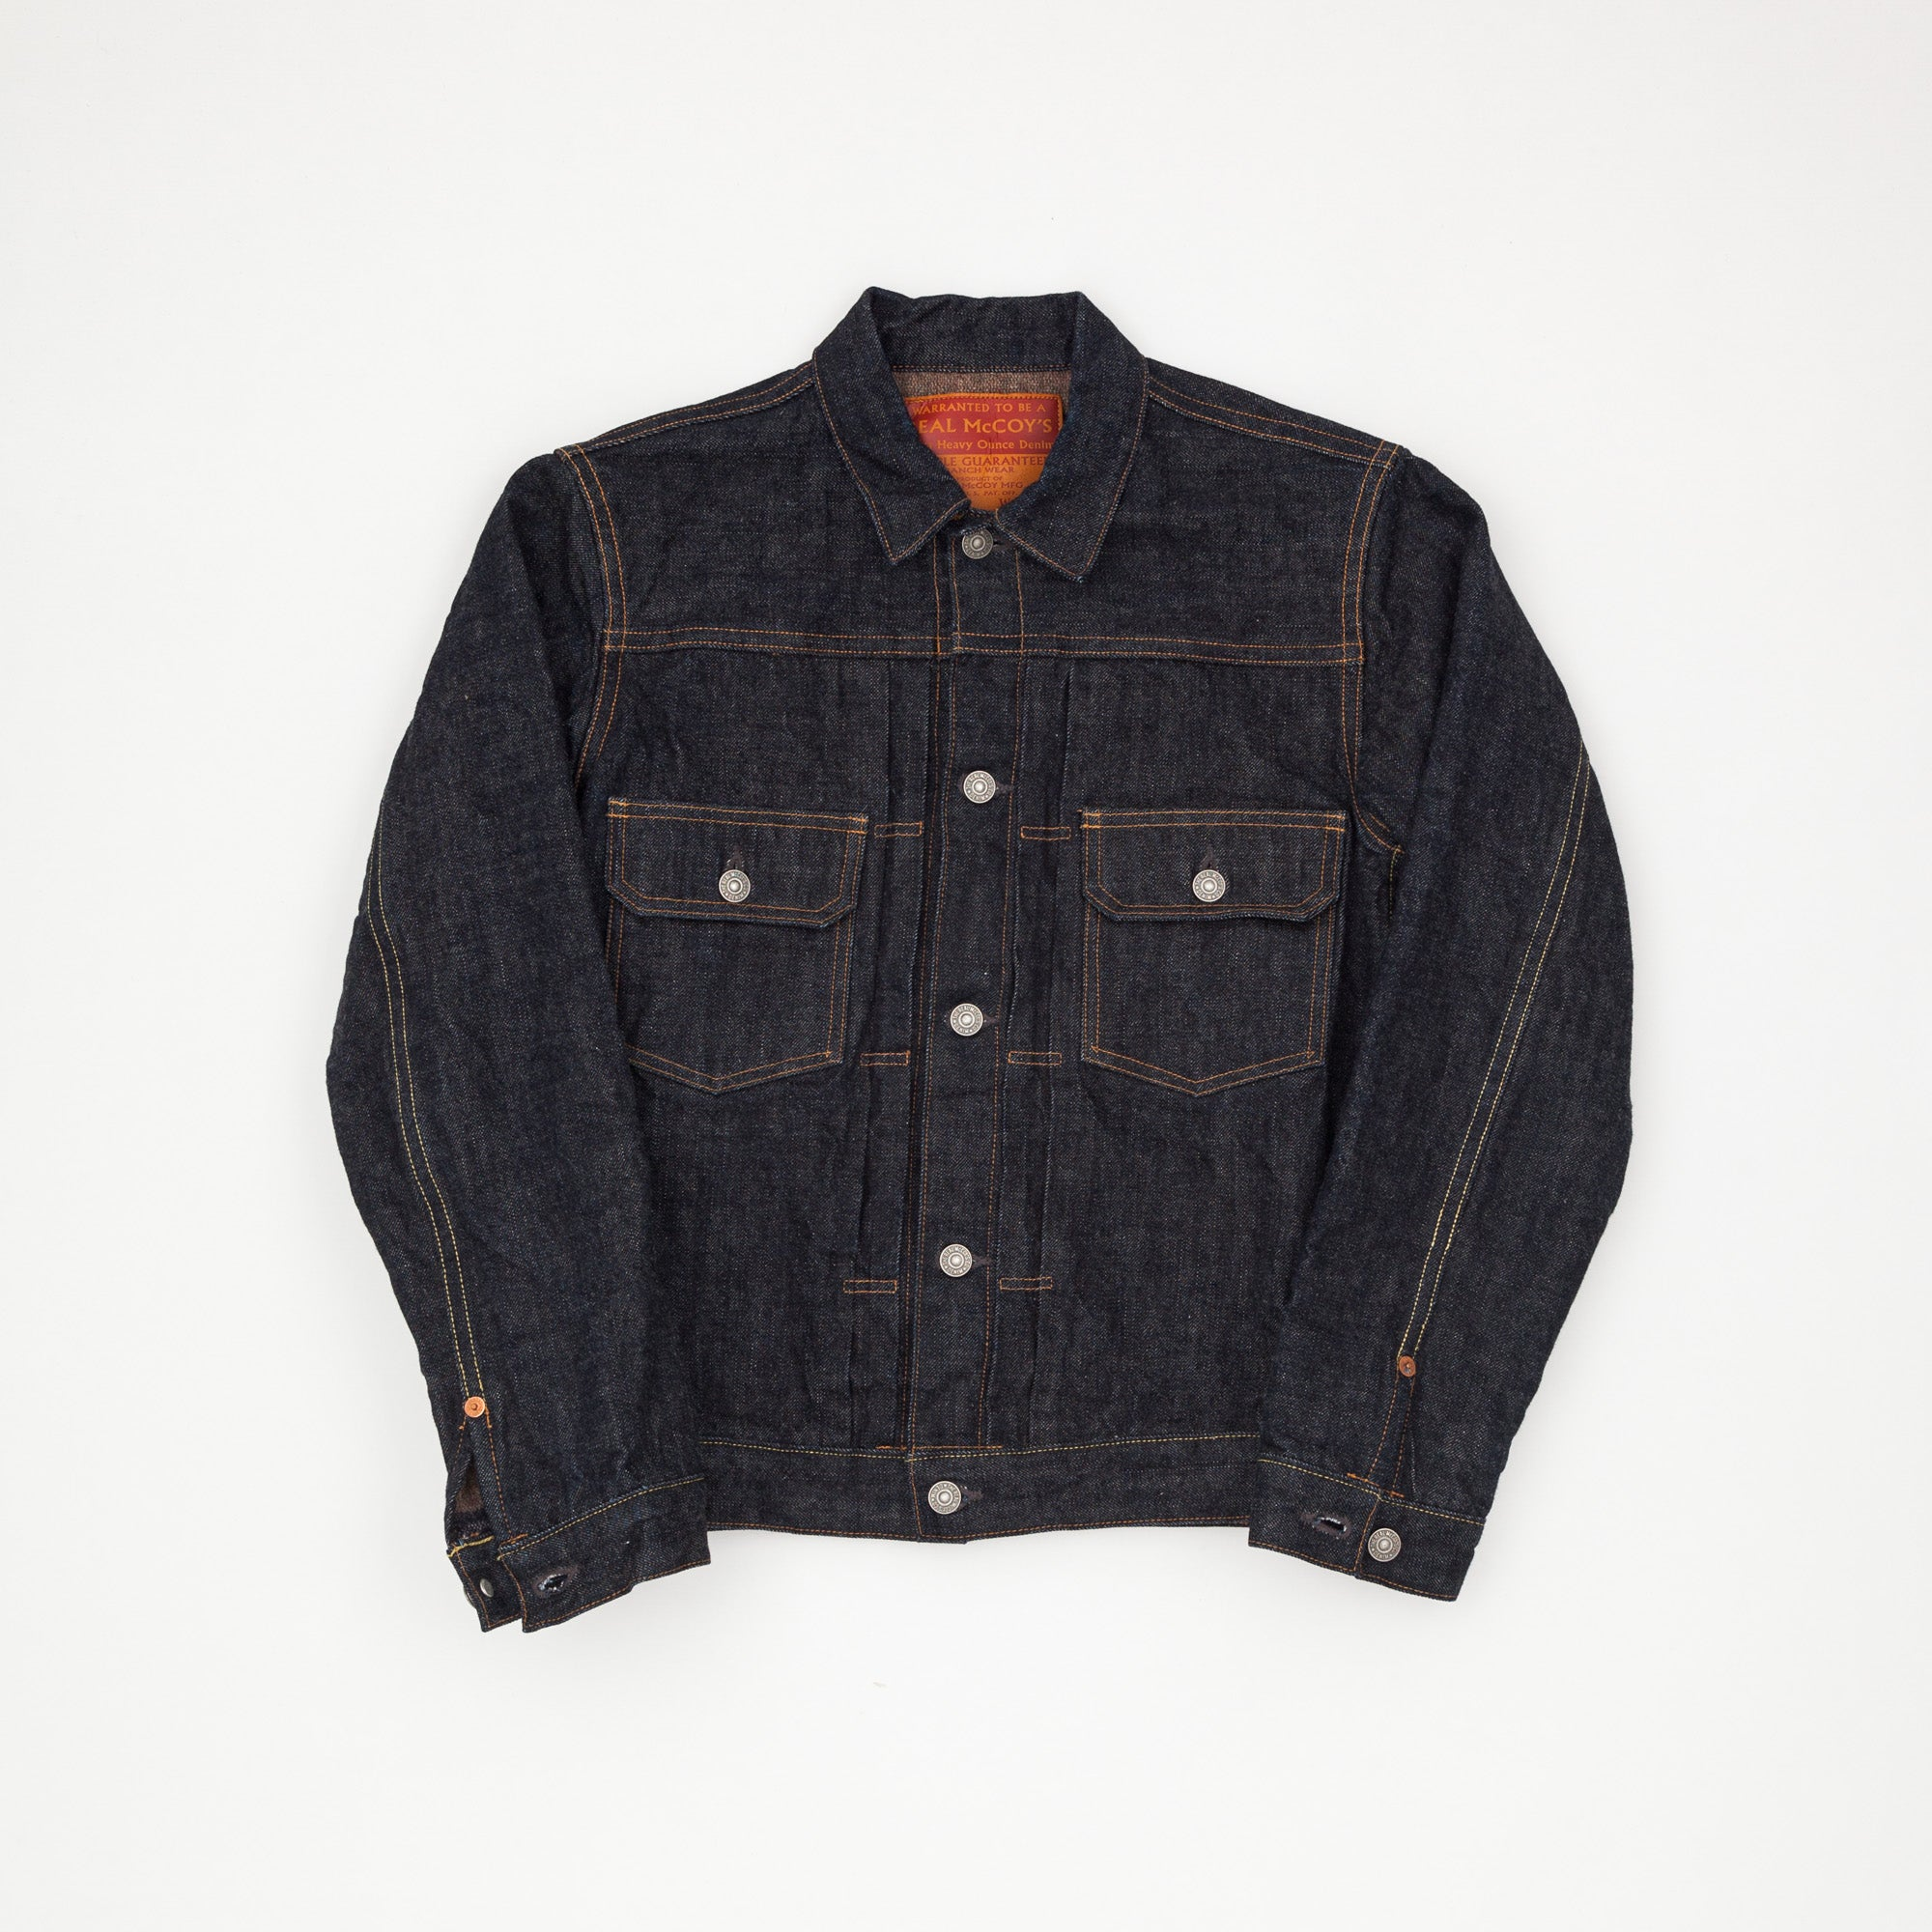 Blanket Lined Lot. 002J Denim Jacket.